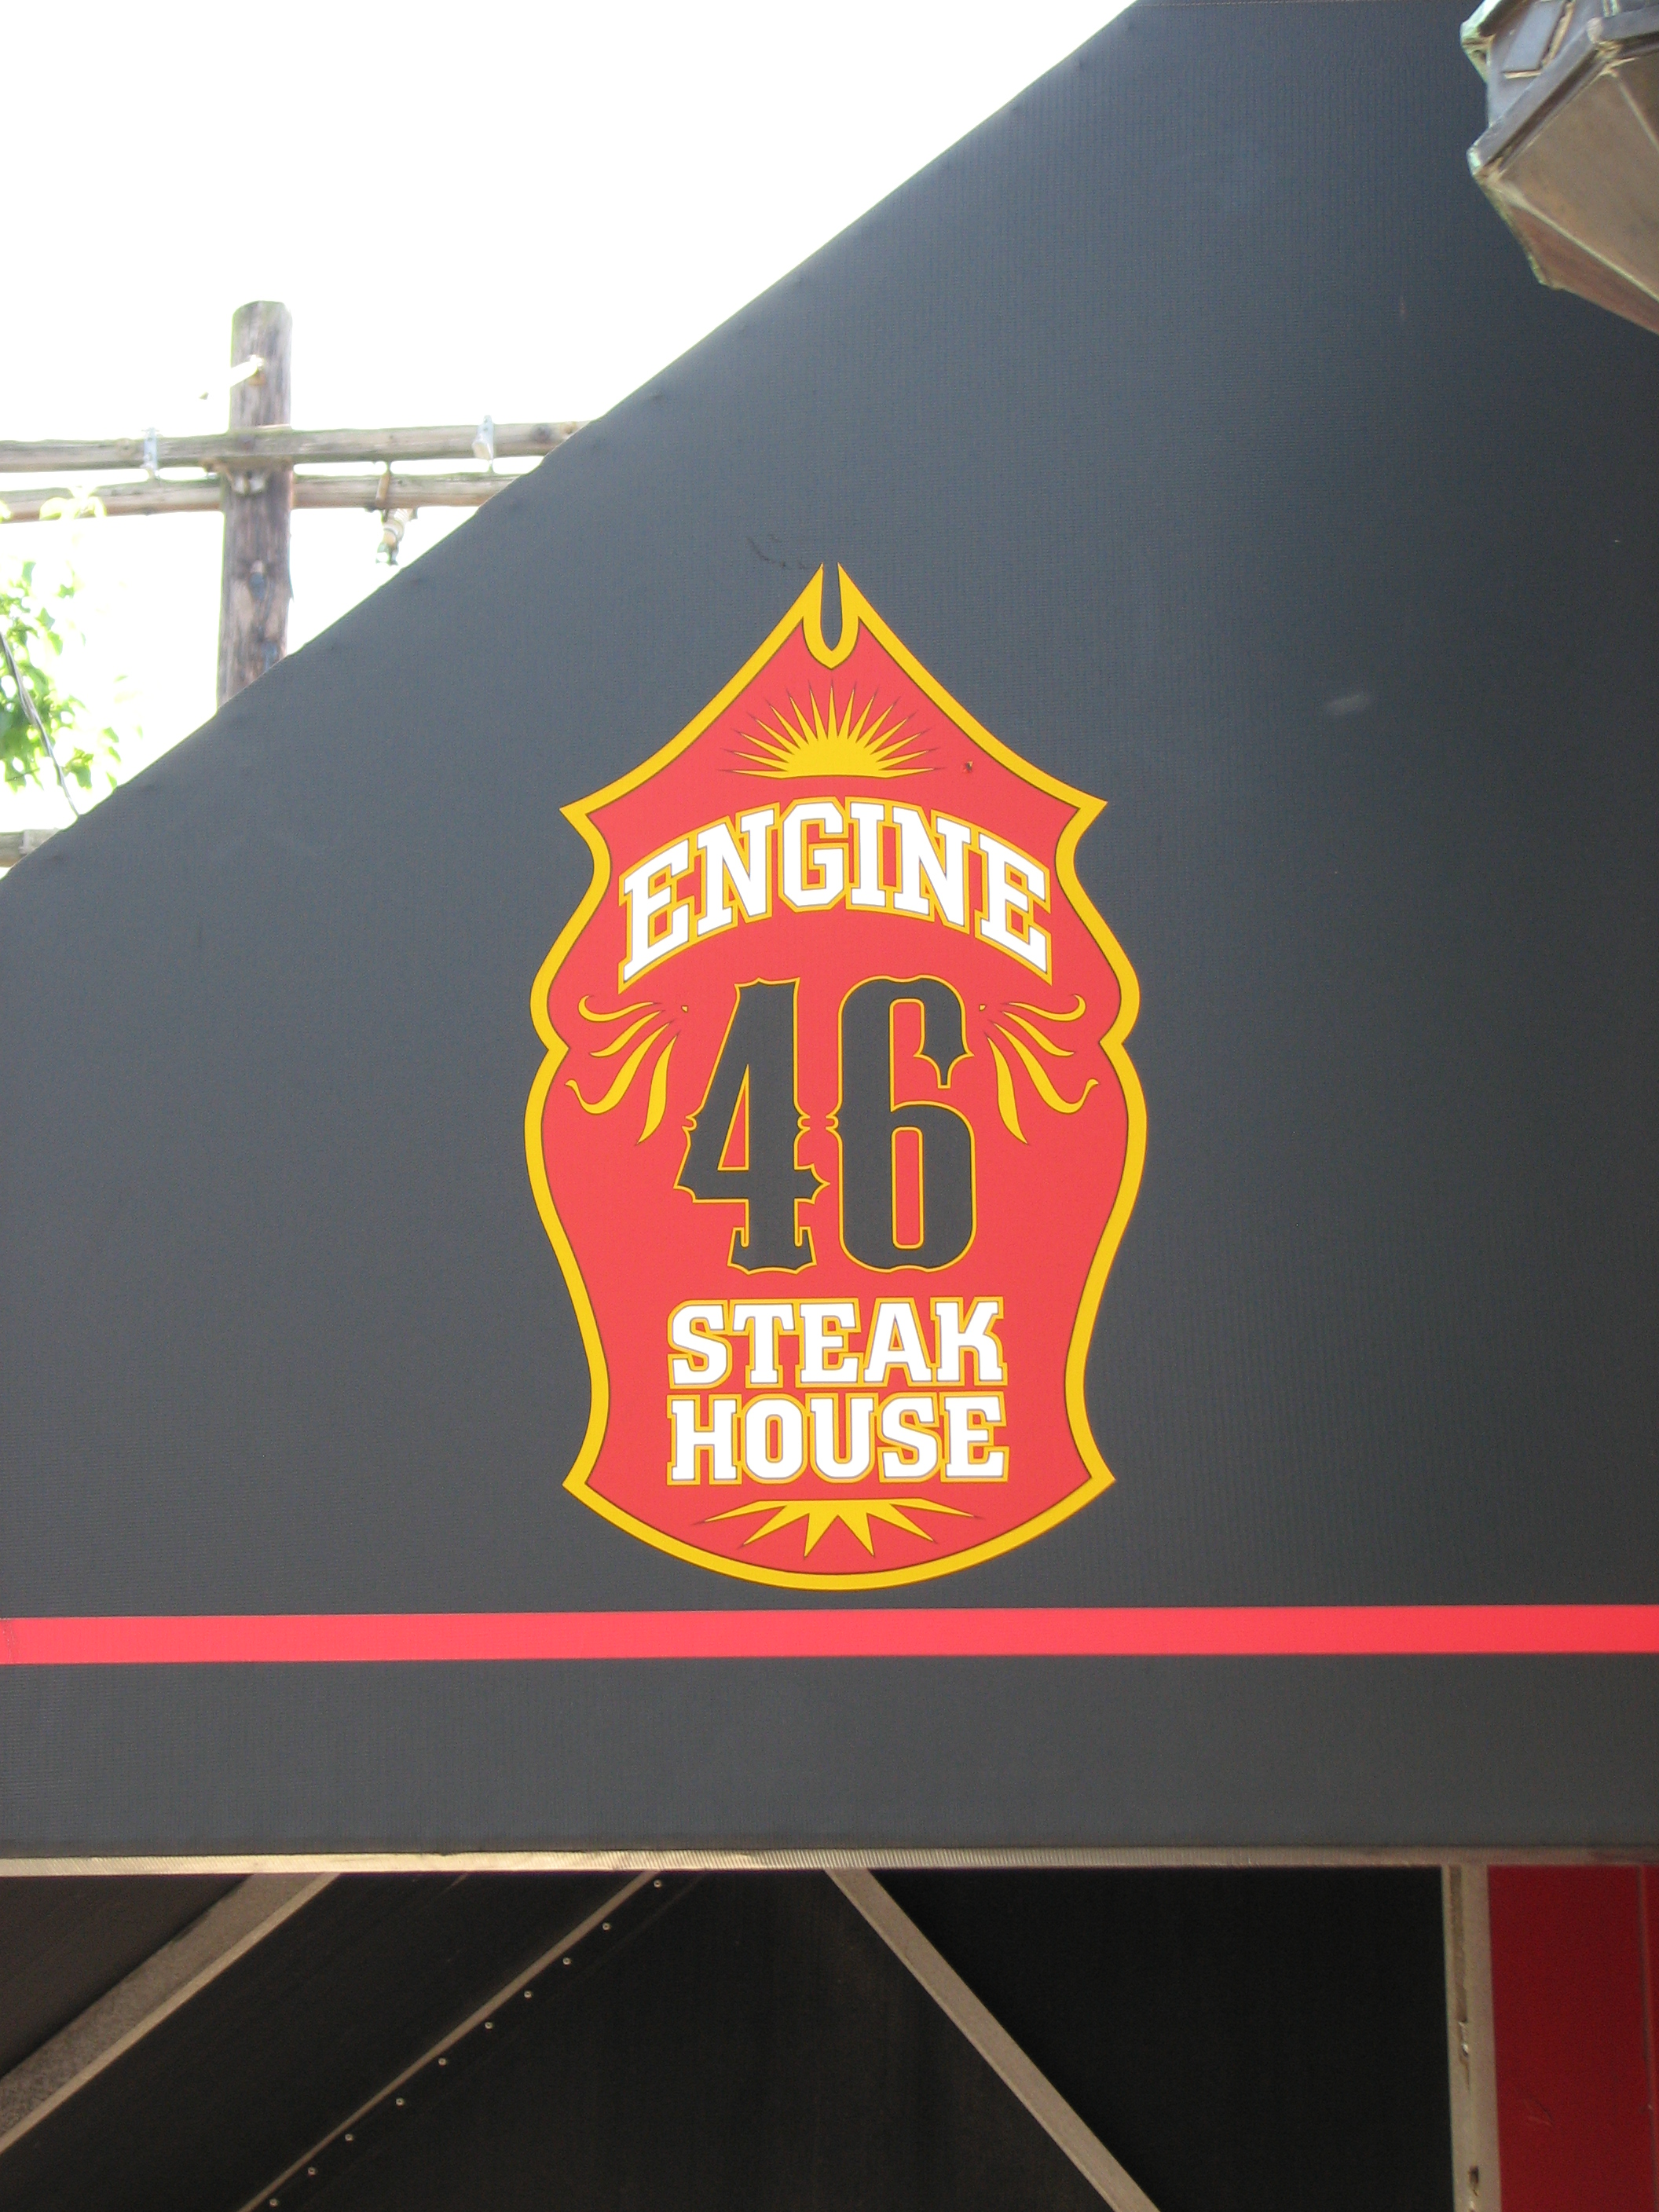 For about 10 years the firehouse was repurposed as a steakhouse.